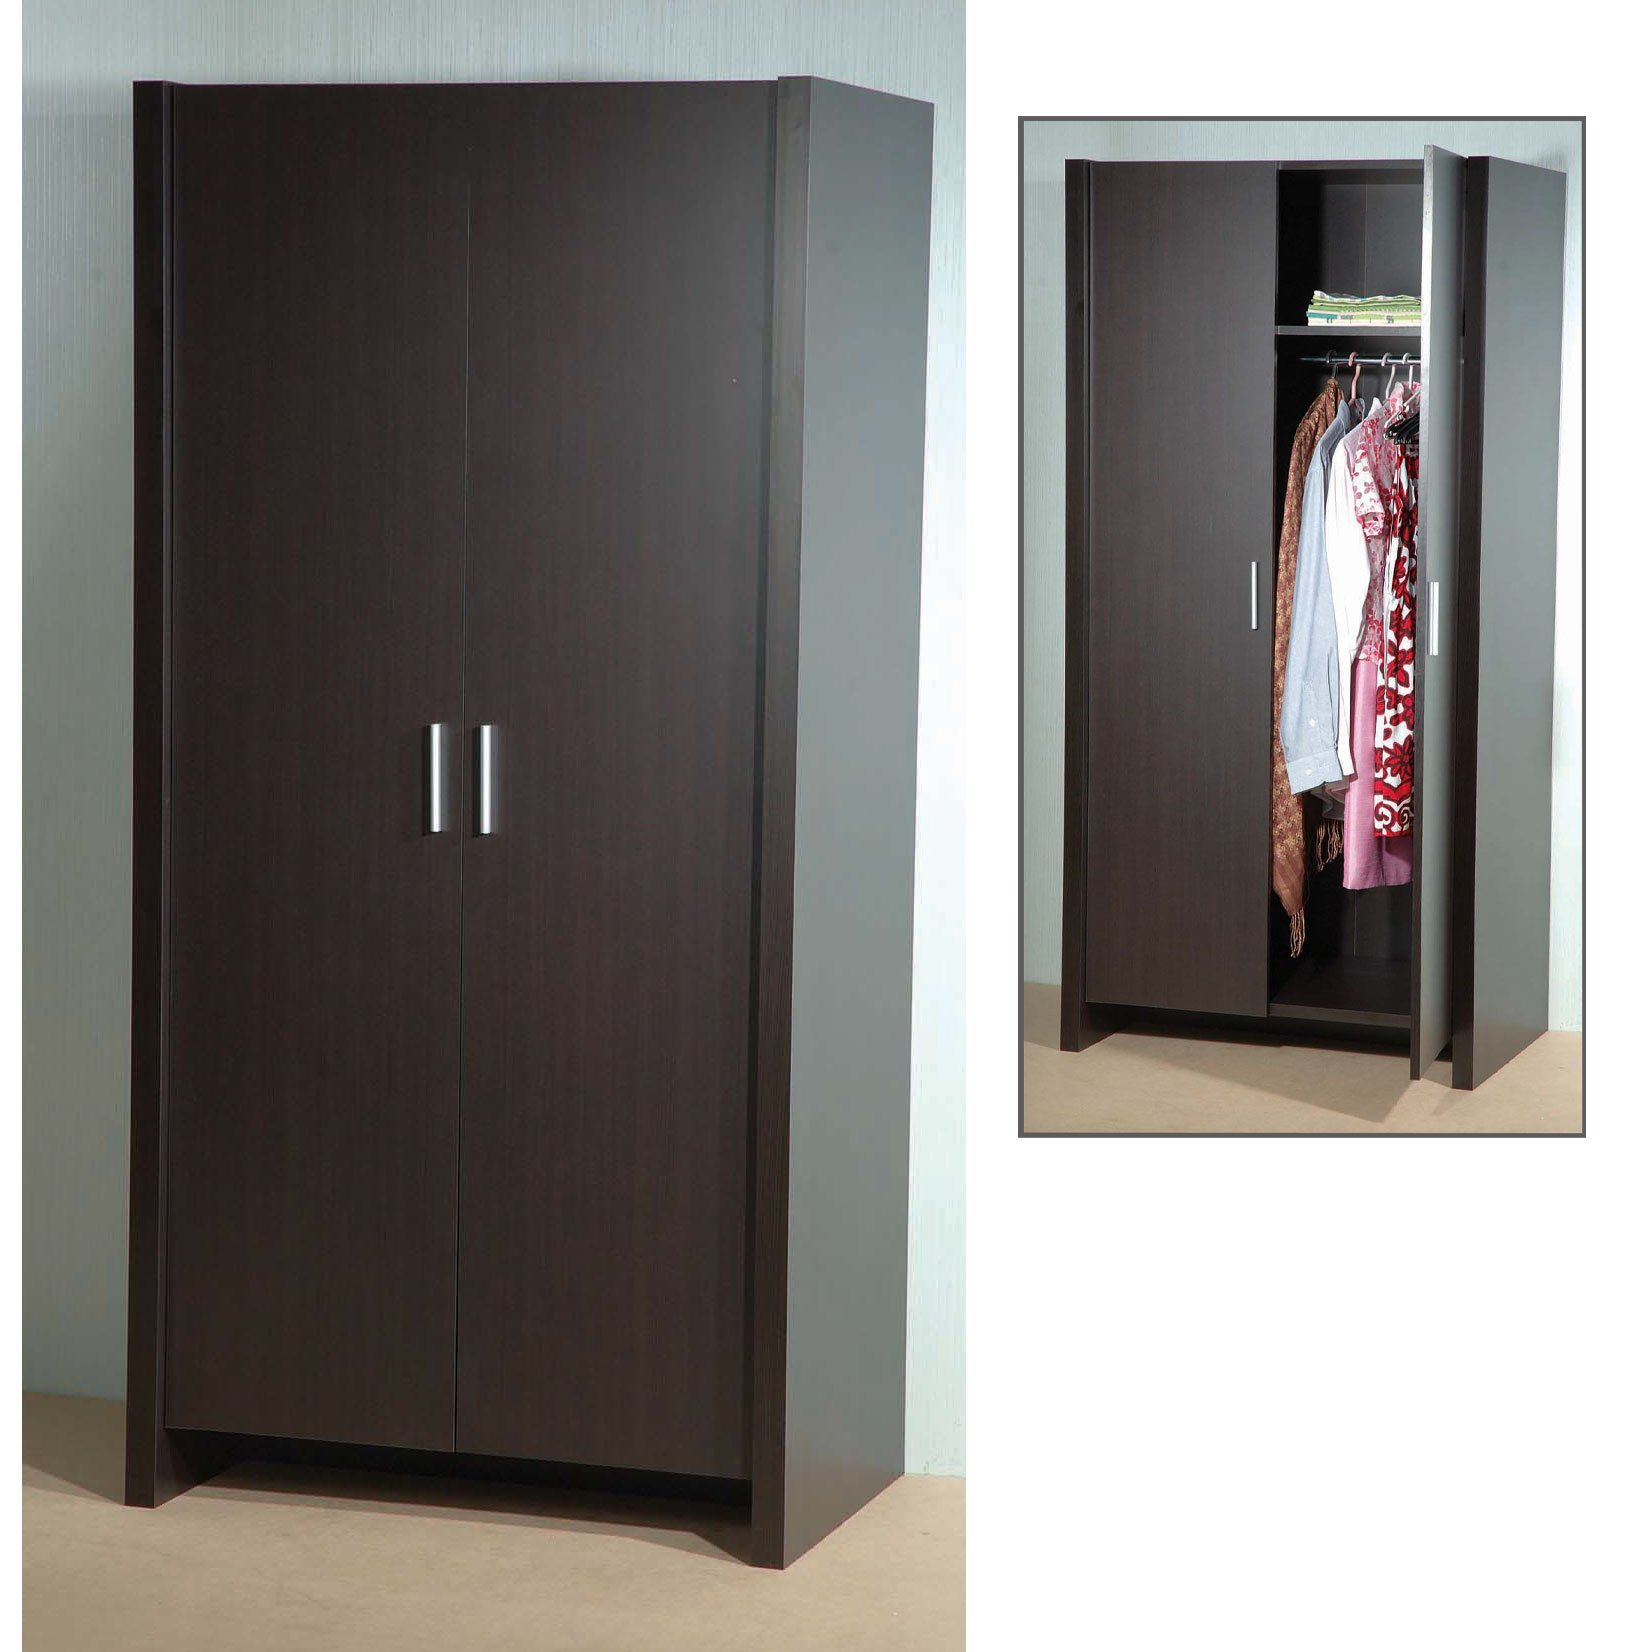 Dano 2 Door Wardrobe In Expresso Brown 5073 Furniture IN Fas